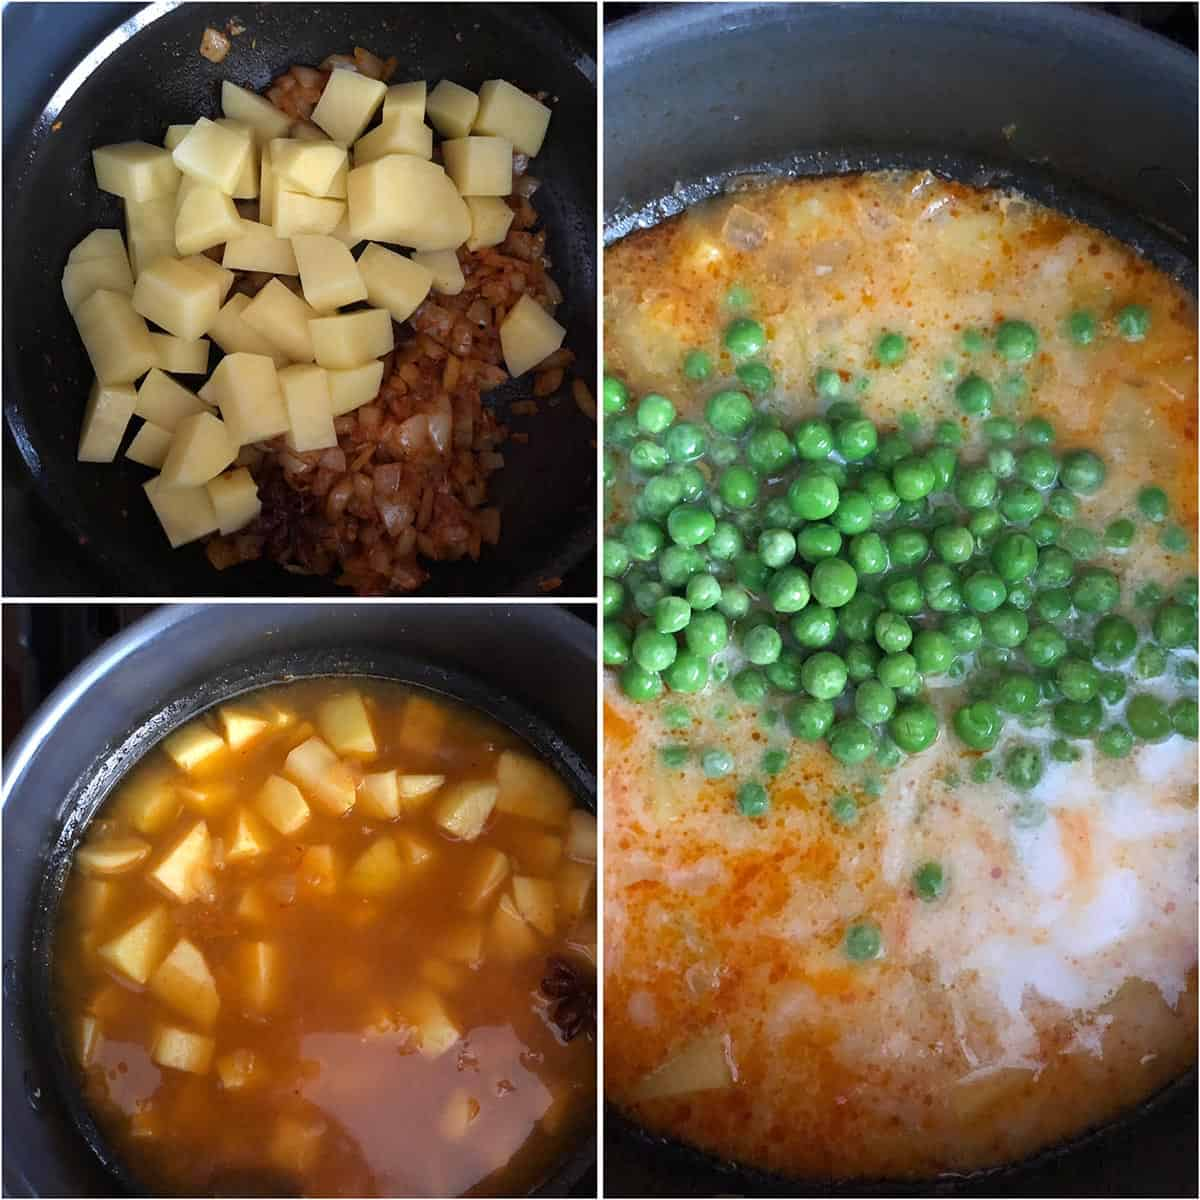 Adding potatoes, water and peas to the pan